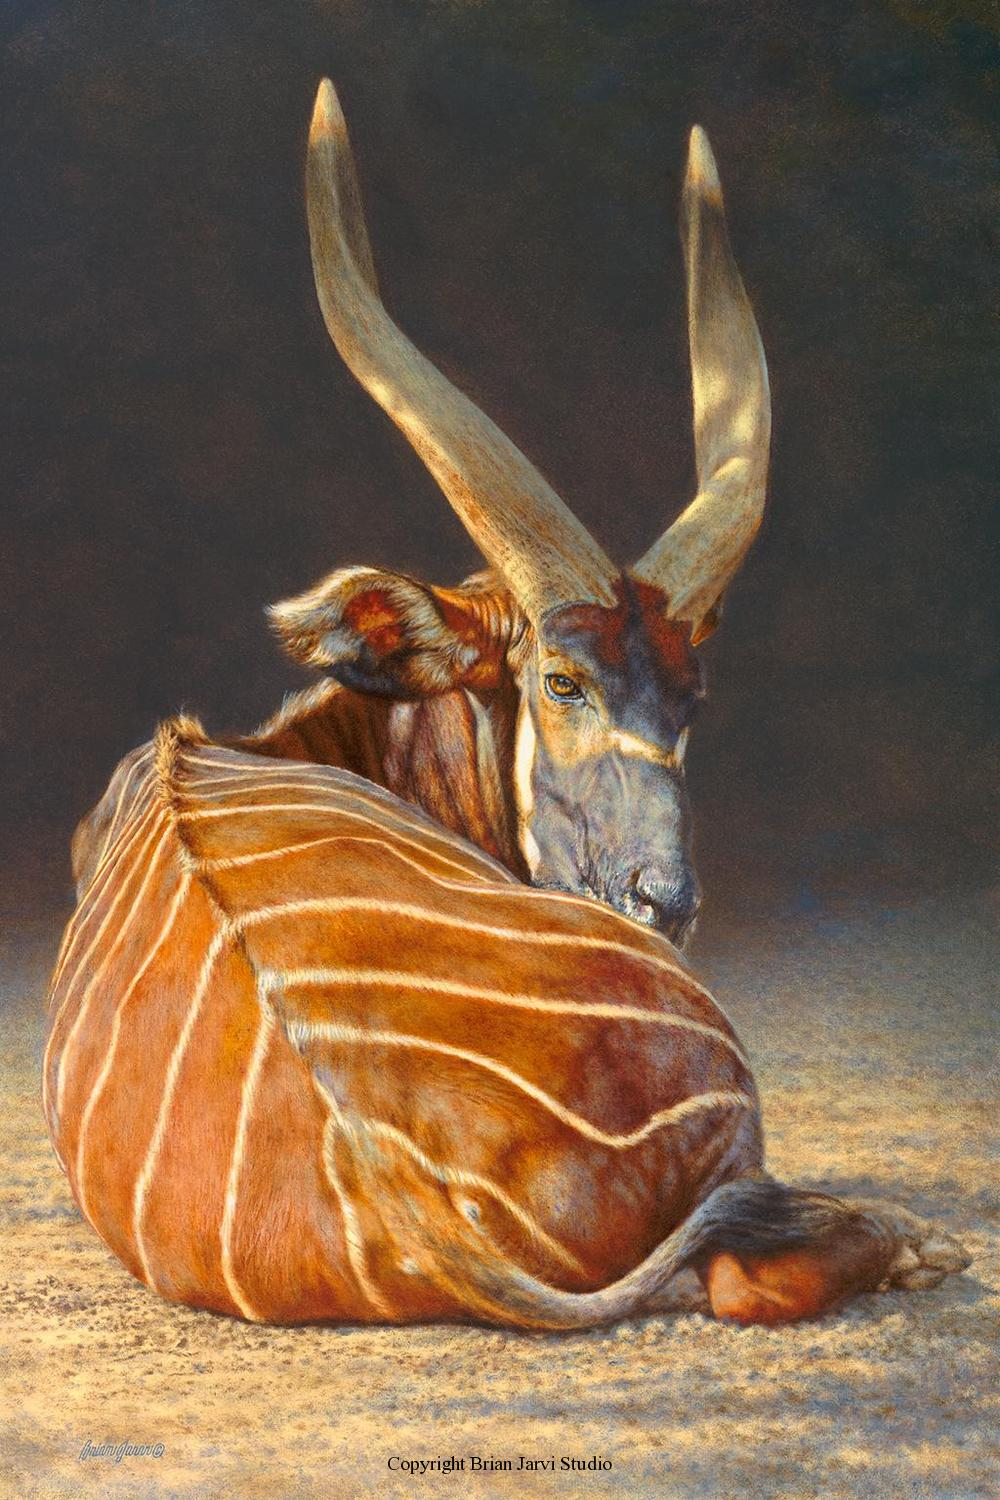 "Bongo Study Original Oil 24"" x 36"" - Sold <B><font size=""2"" color=""red""><br>This Original has been sold and is in a private collection</font></B> - Brian Jarvi Studios Studies for African Menagerie Paintings Brian Jarvi Originals"